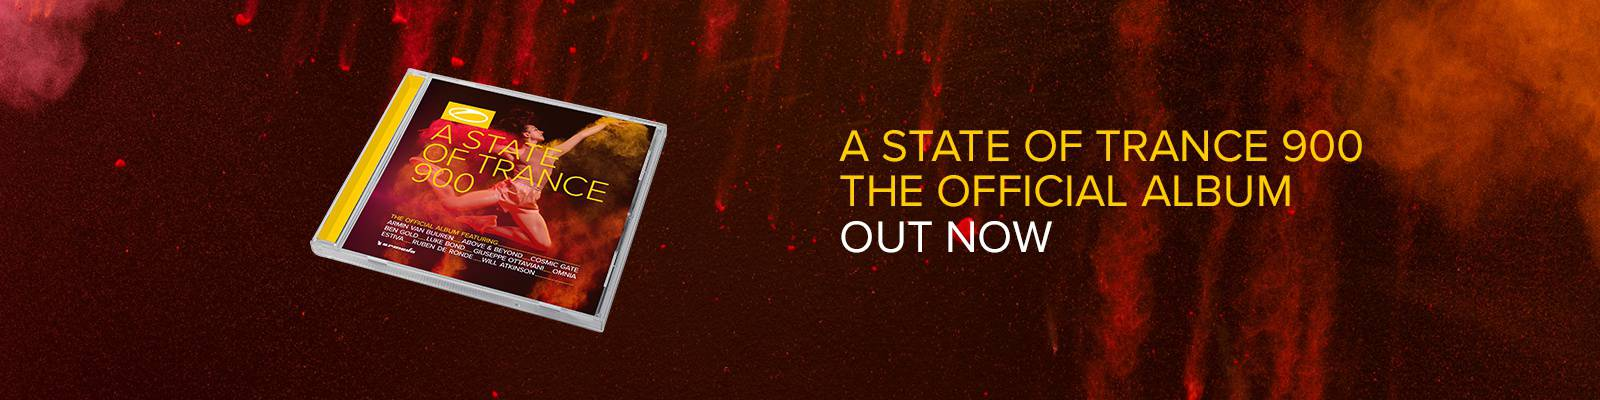 Armin van Buuren lifts fans higher with 'A State Of Trance 900 (The Official Album)'